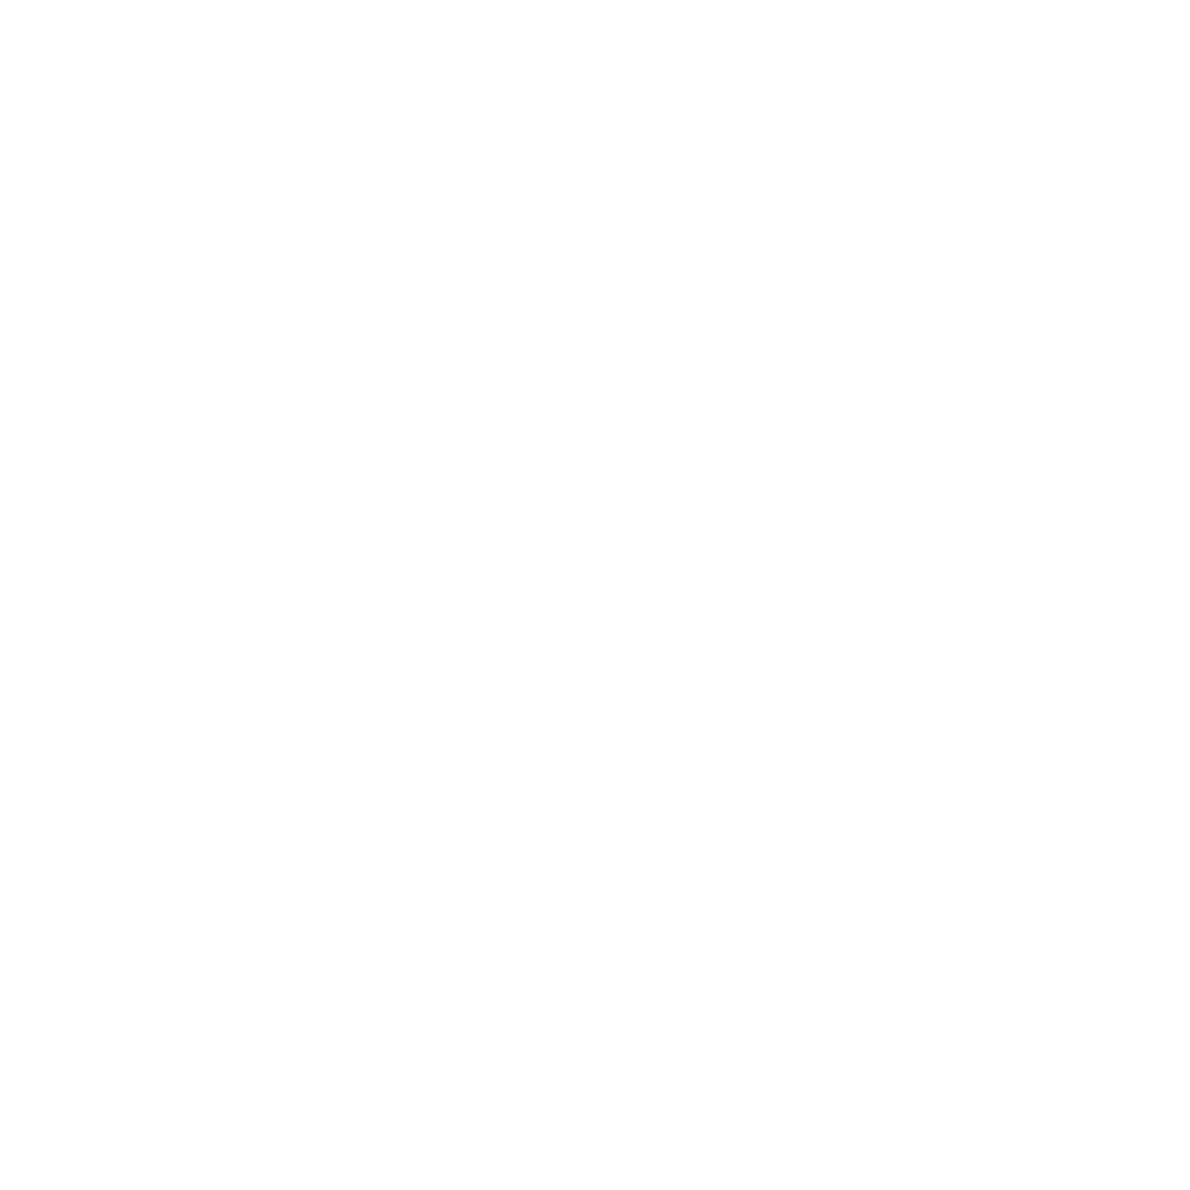 football-icon.png